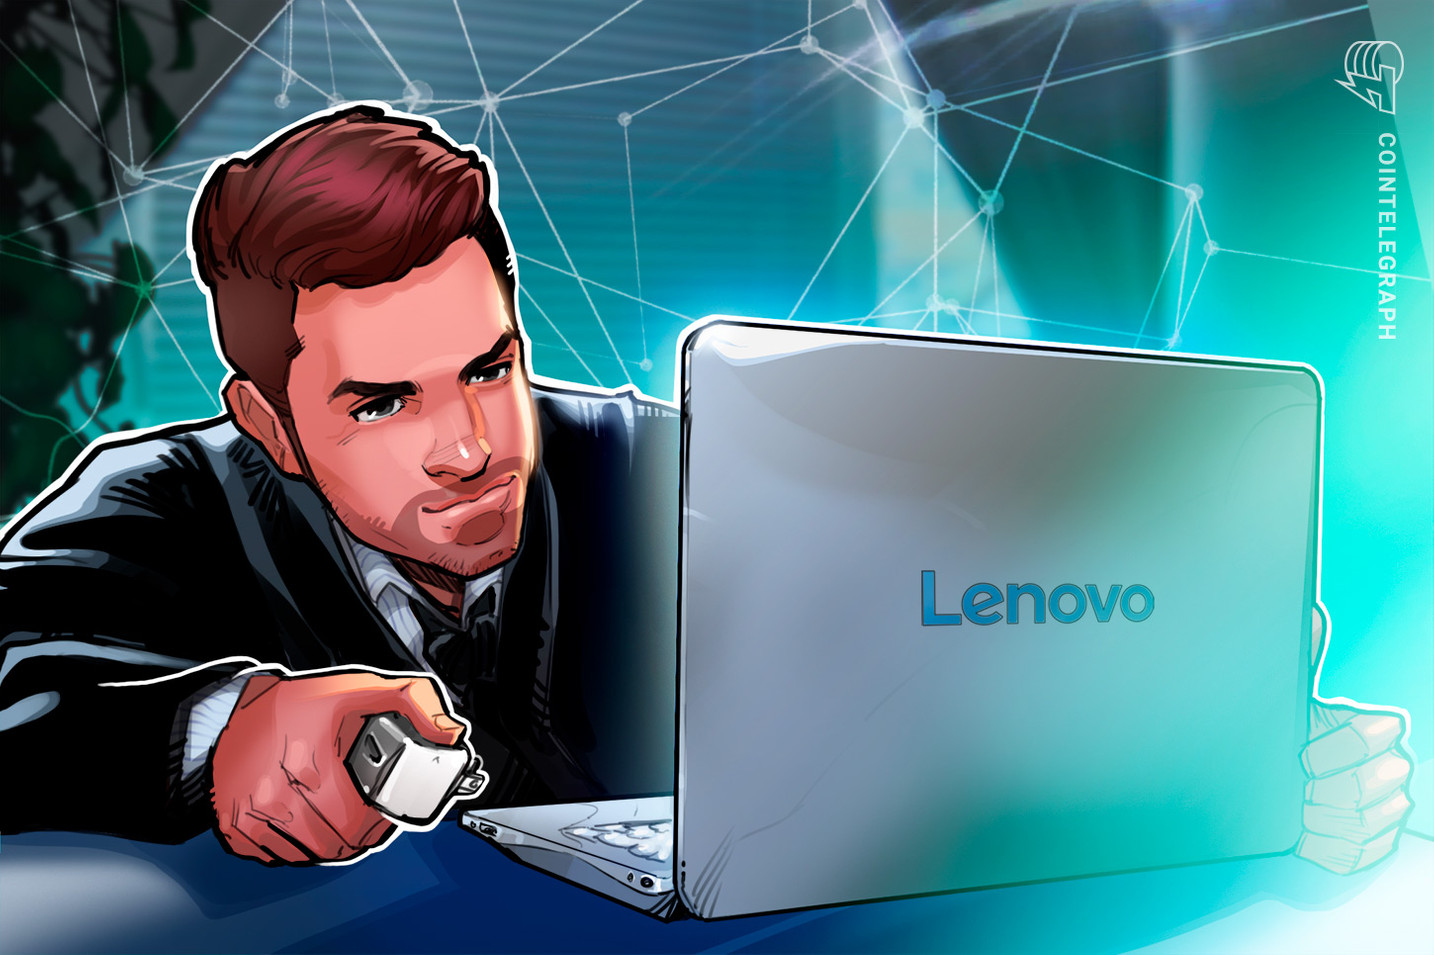 IBM to Apply Blockchain Tech to Lenovo's Data Centers